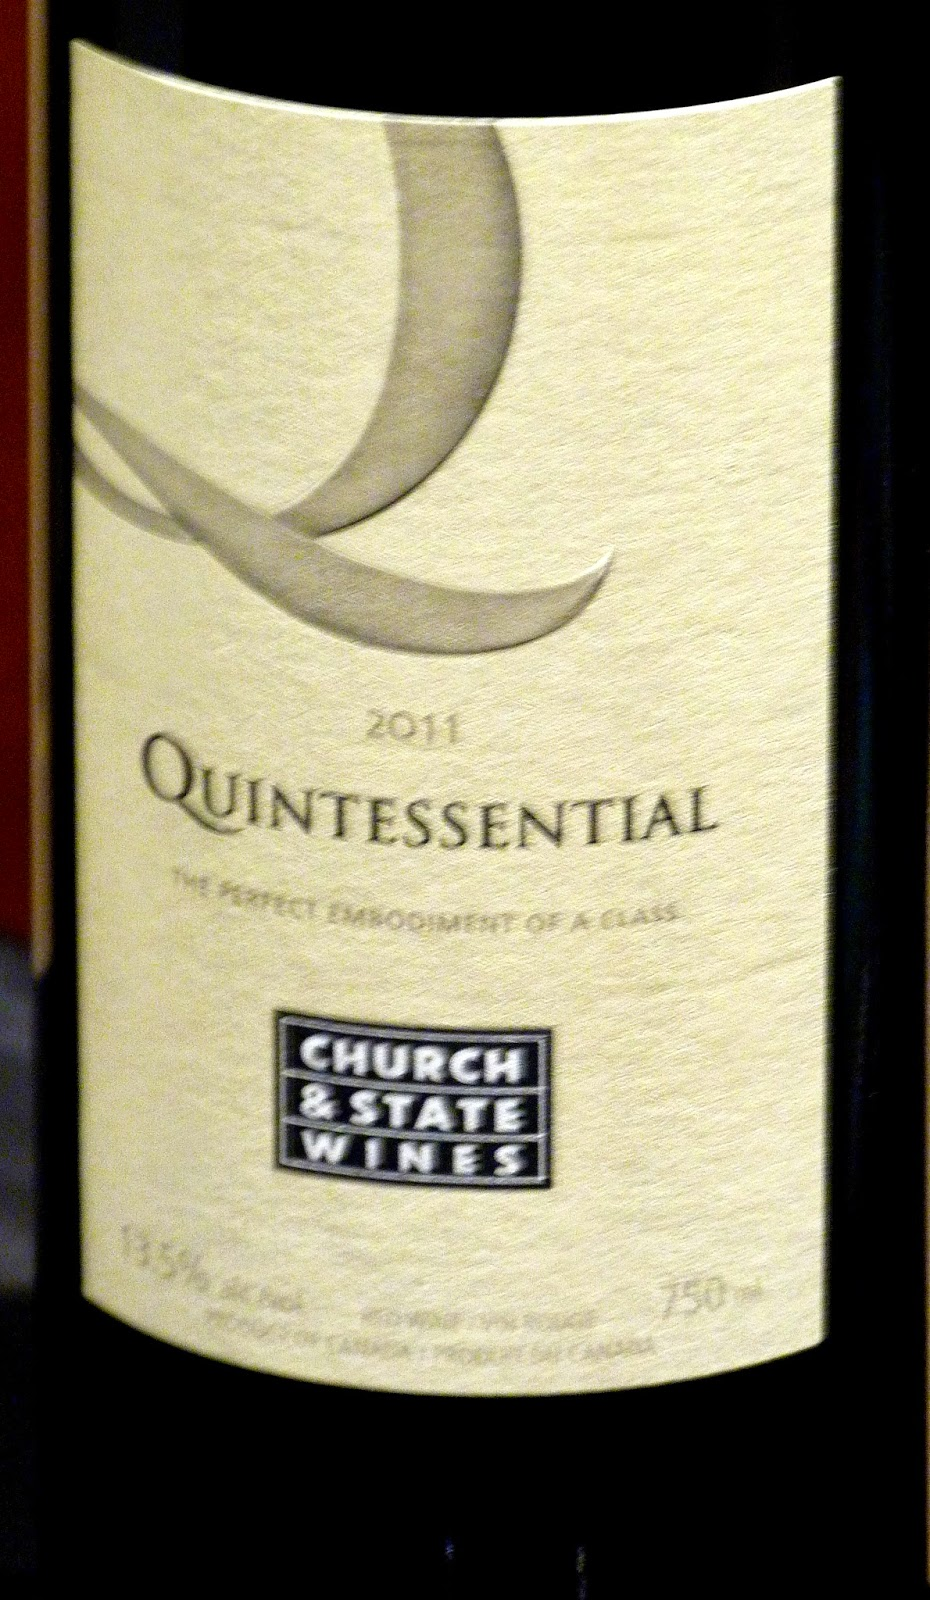 john schreiner on wine church state quintessential 2011 wins church and state quintessential 2011 55 merlot 70% cabernet franc 15% cabernet sauvignon 5% malbec 5% petit verdot 5% this is a wine a track